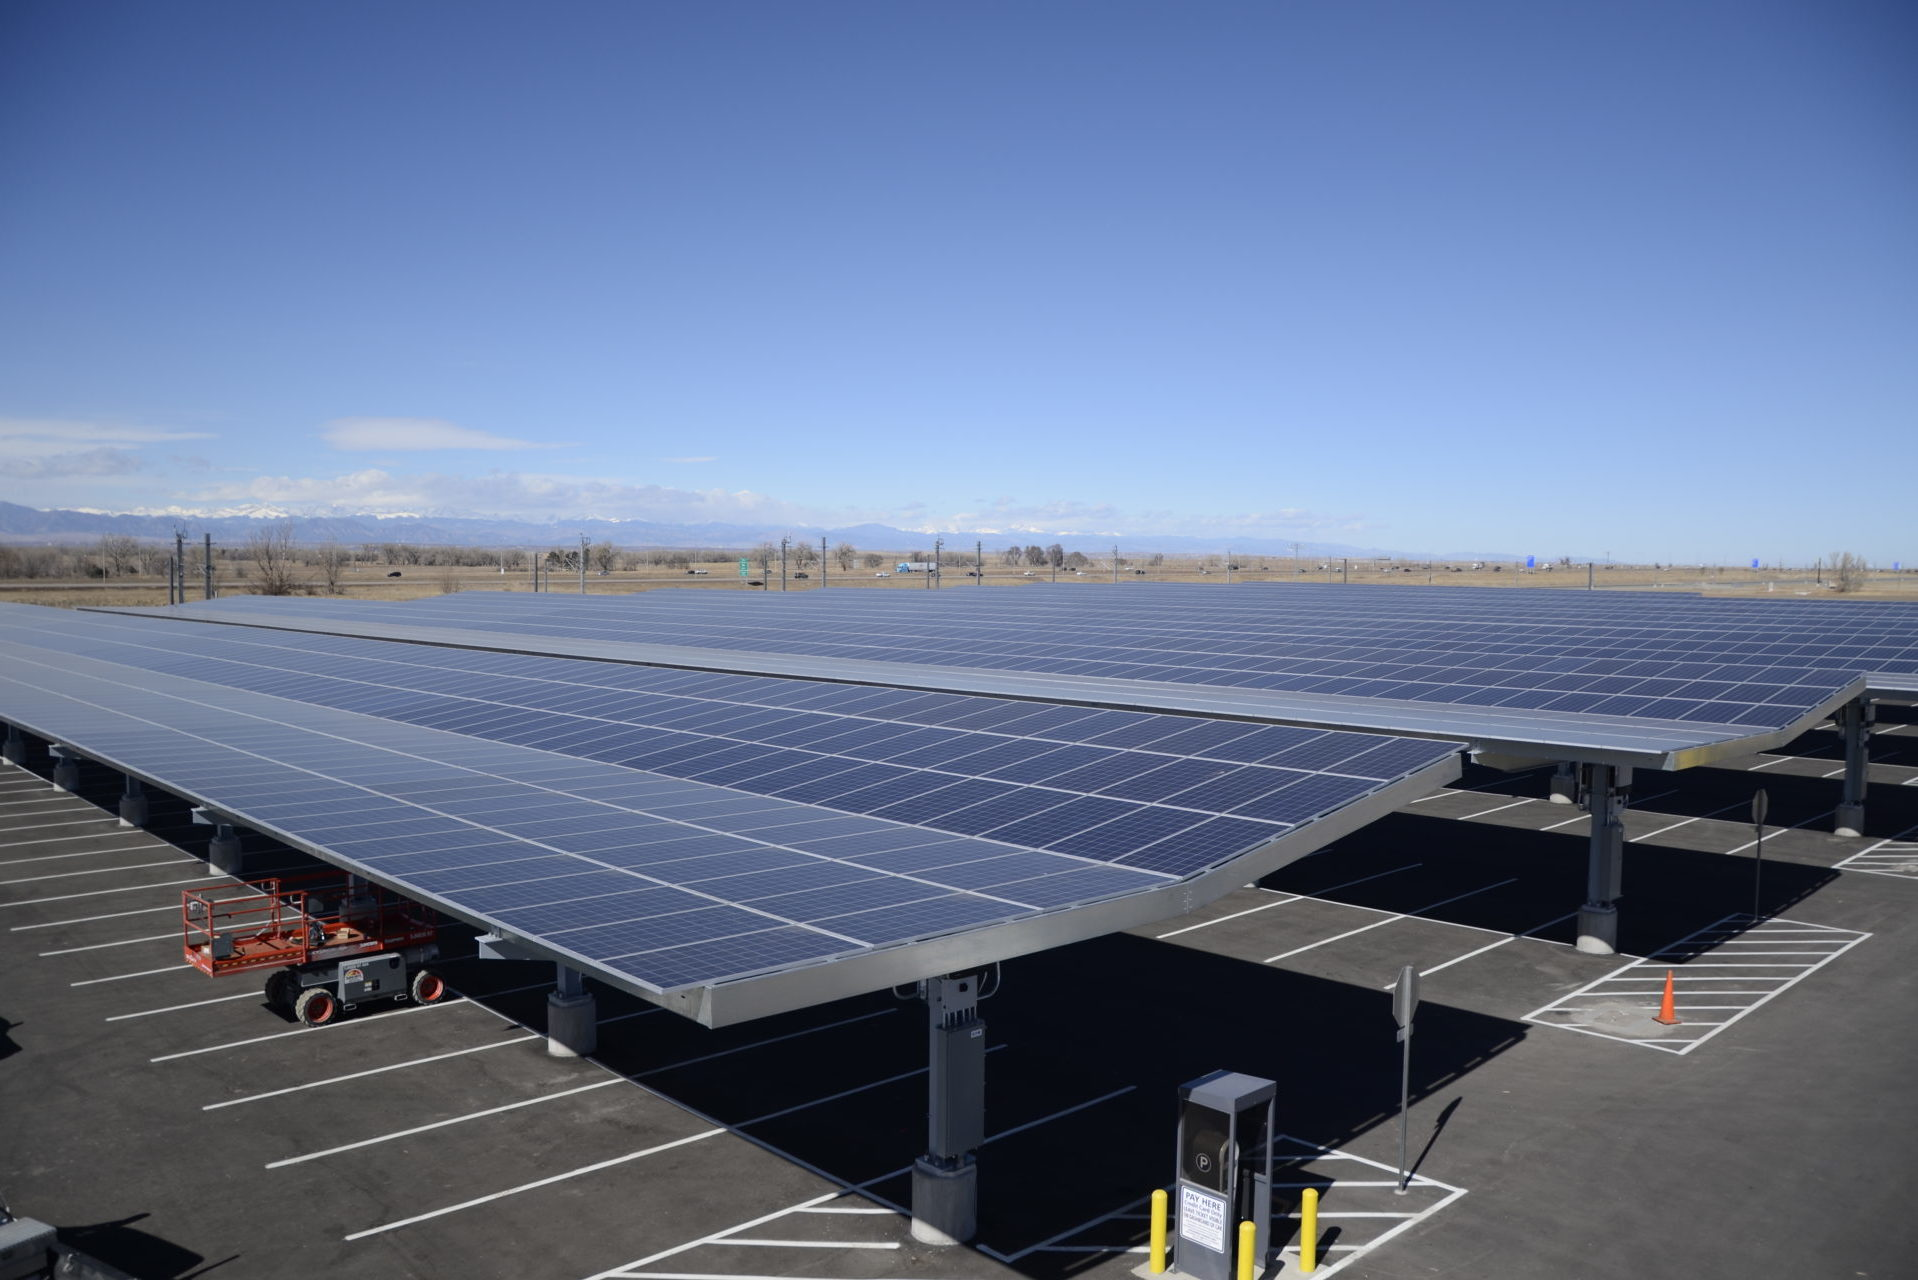 commercial carport solar panels over parking lot in denver